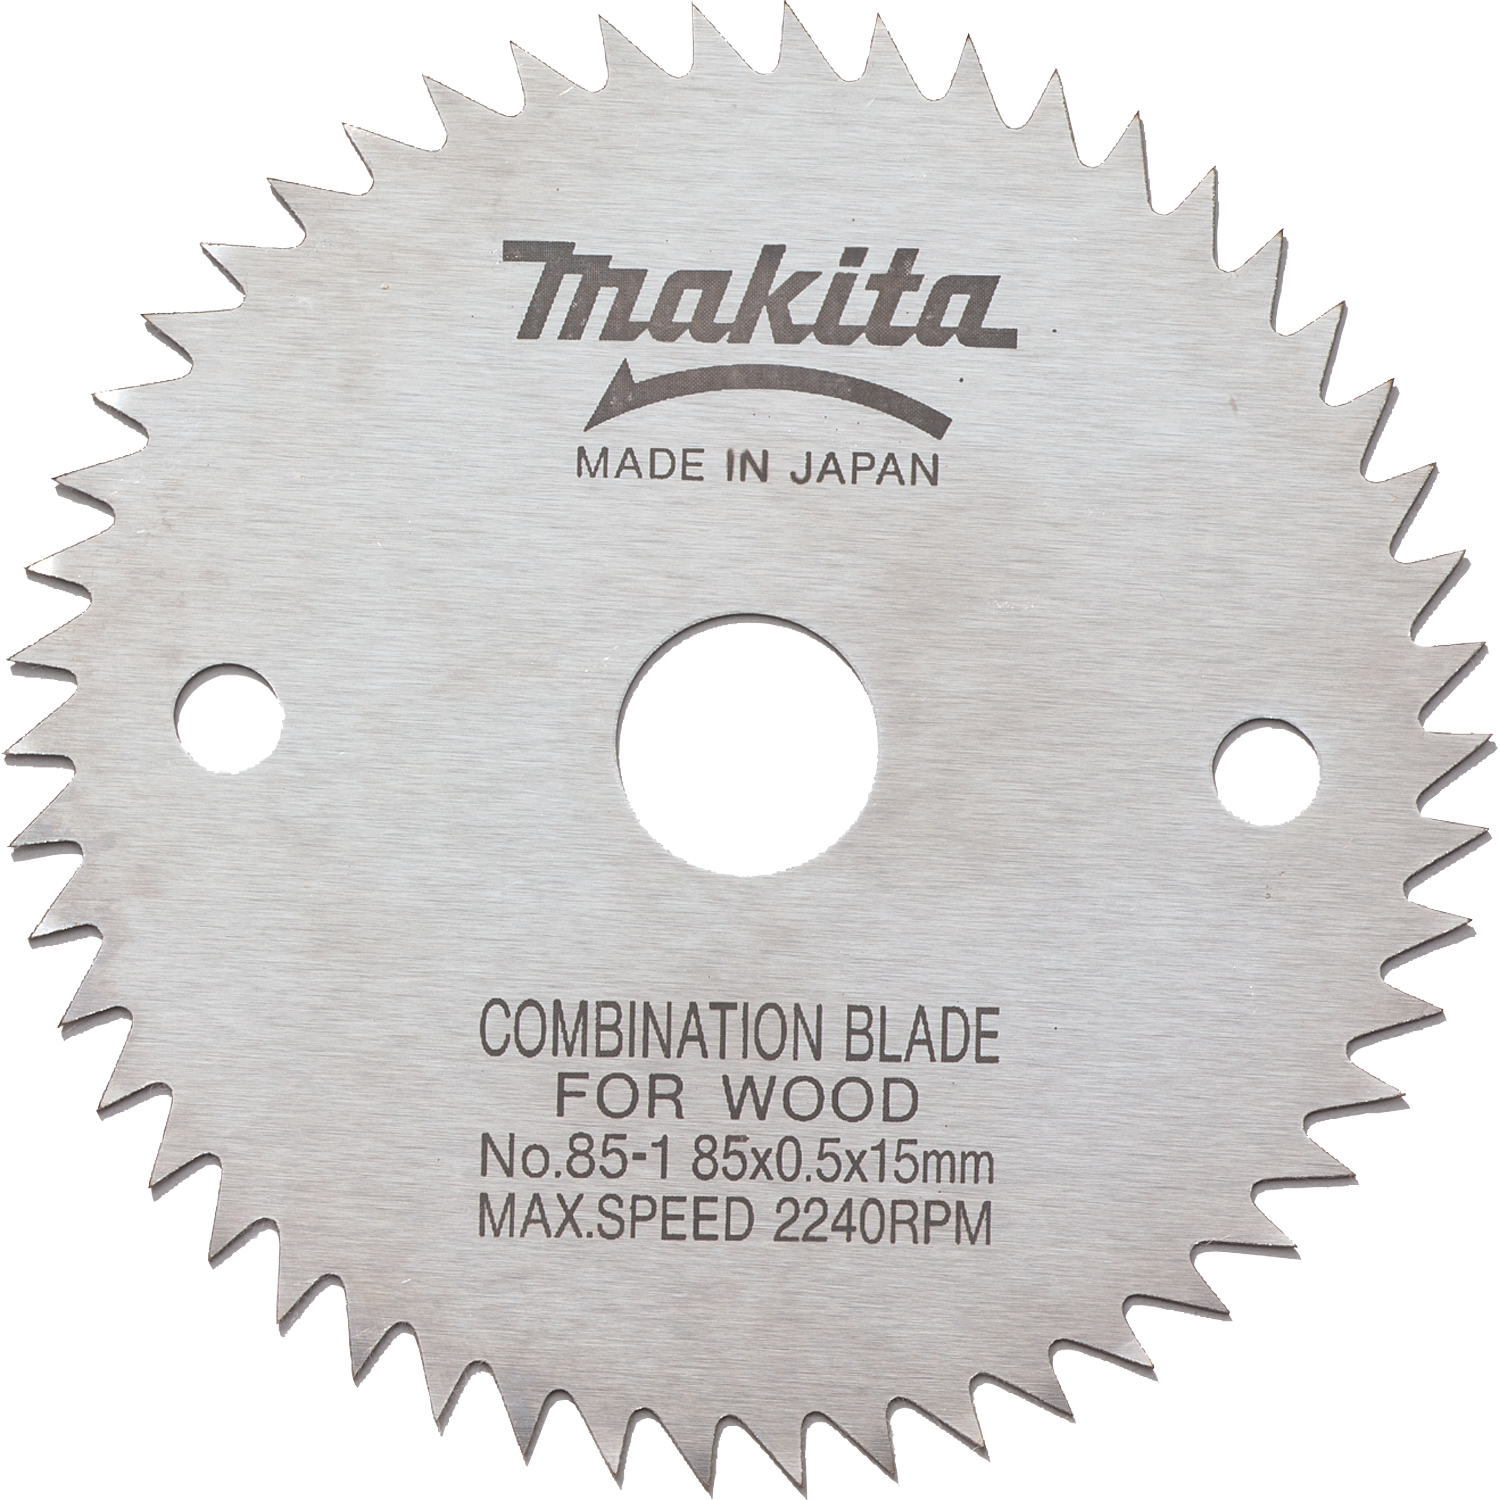 Circular saw blade png vecteezy. Makita usa product details